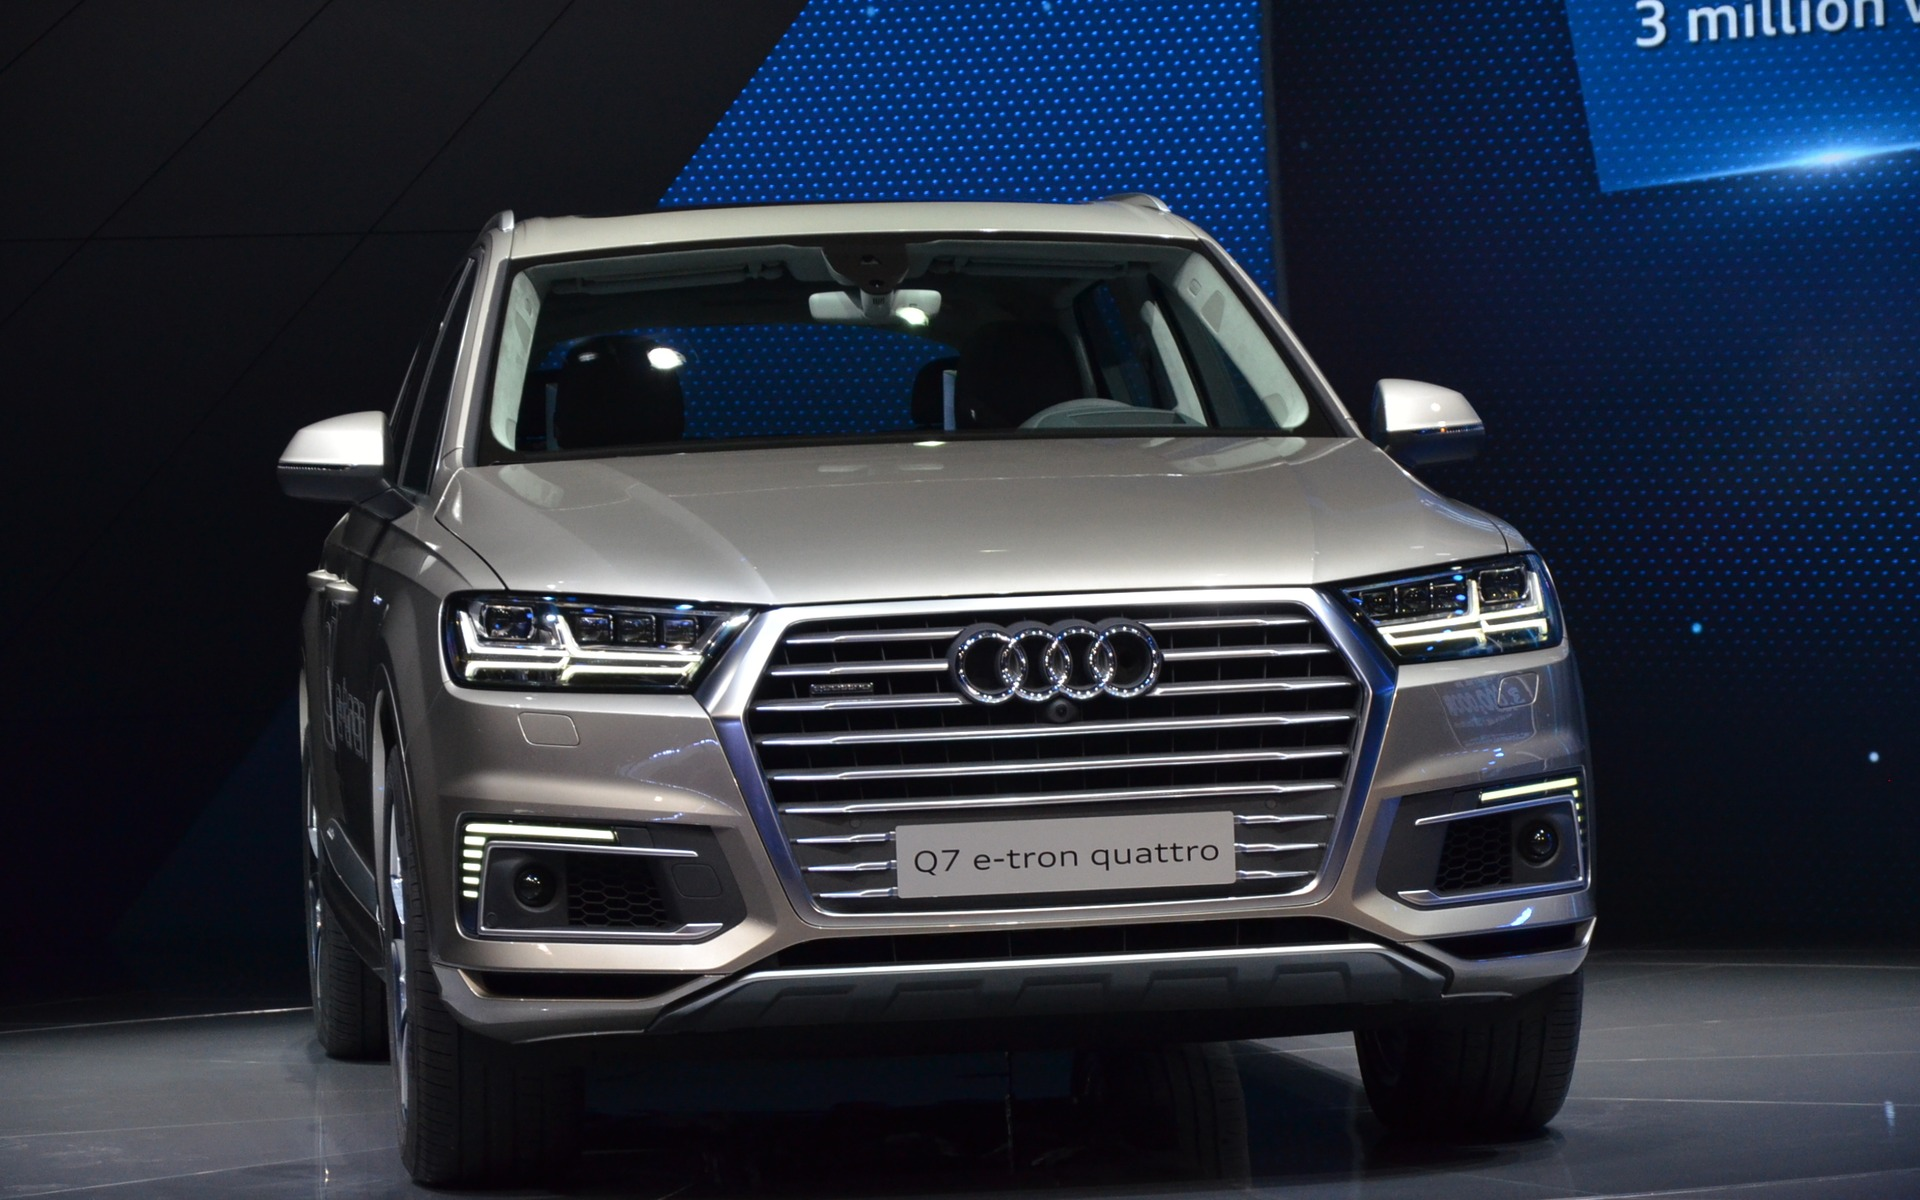 the audi a6 l e tron and q7 e tron quattro unveiled in shanghai 18 18. Black Bedroom Furniture Sets. Home Design Ideas